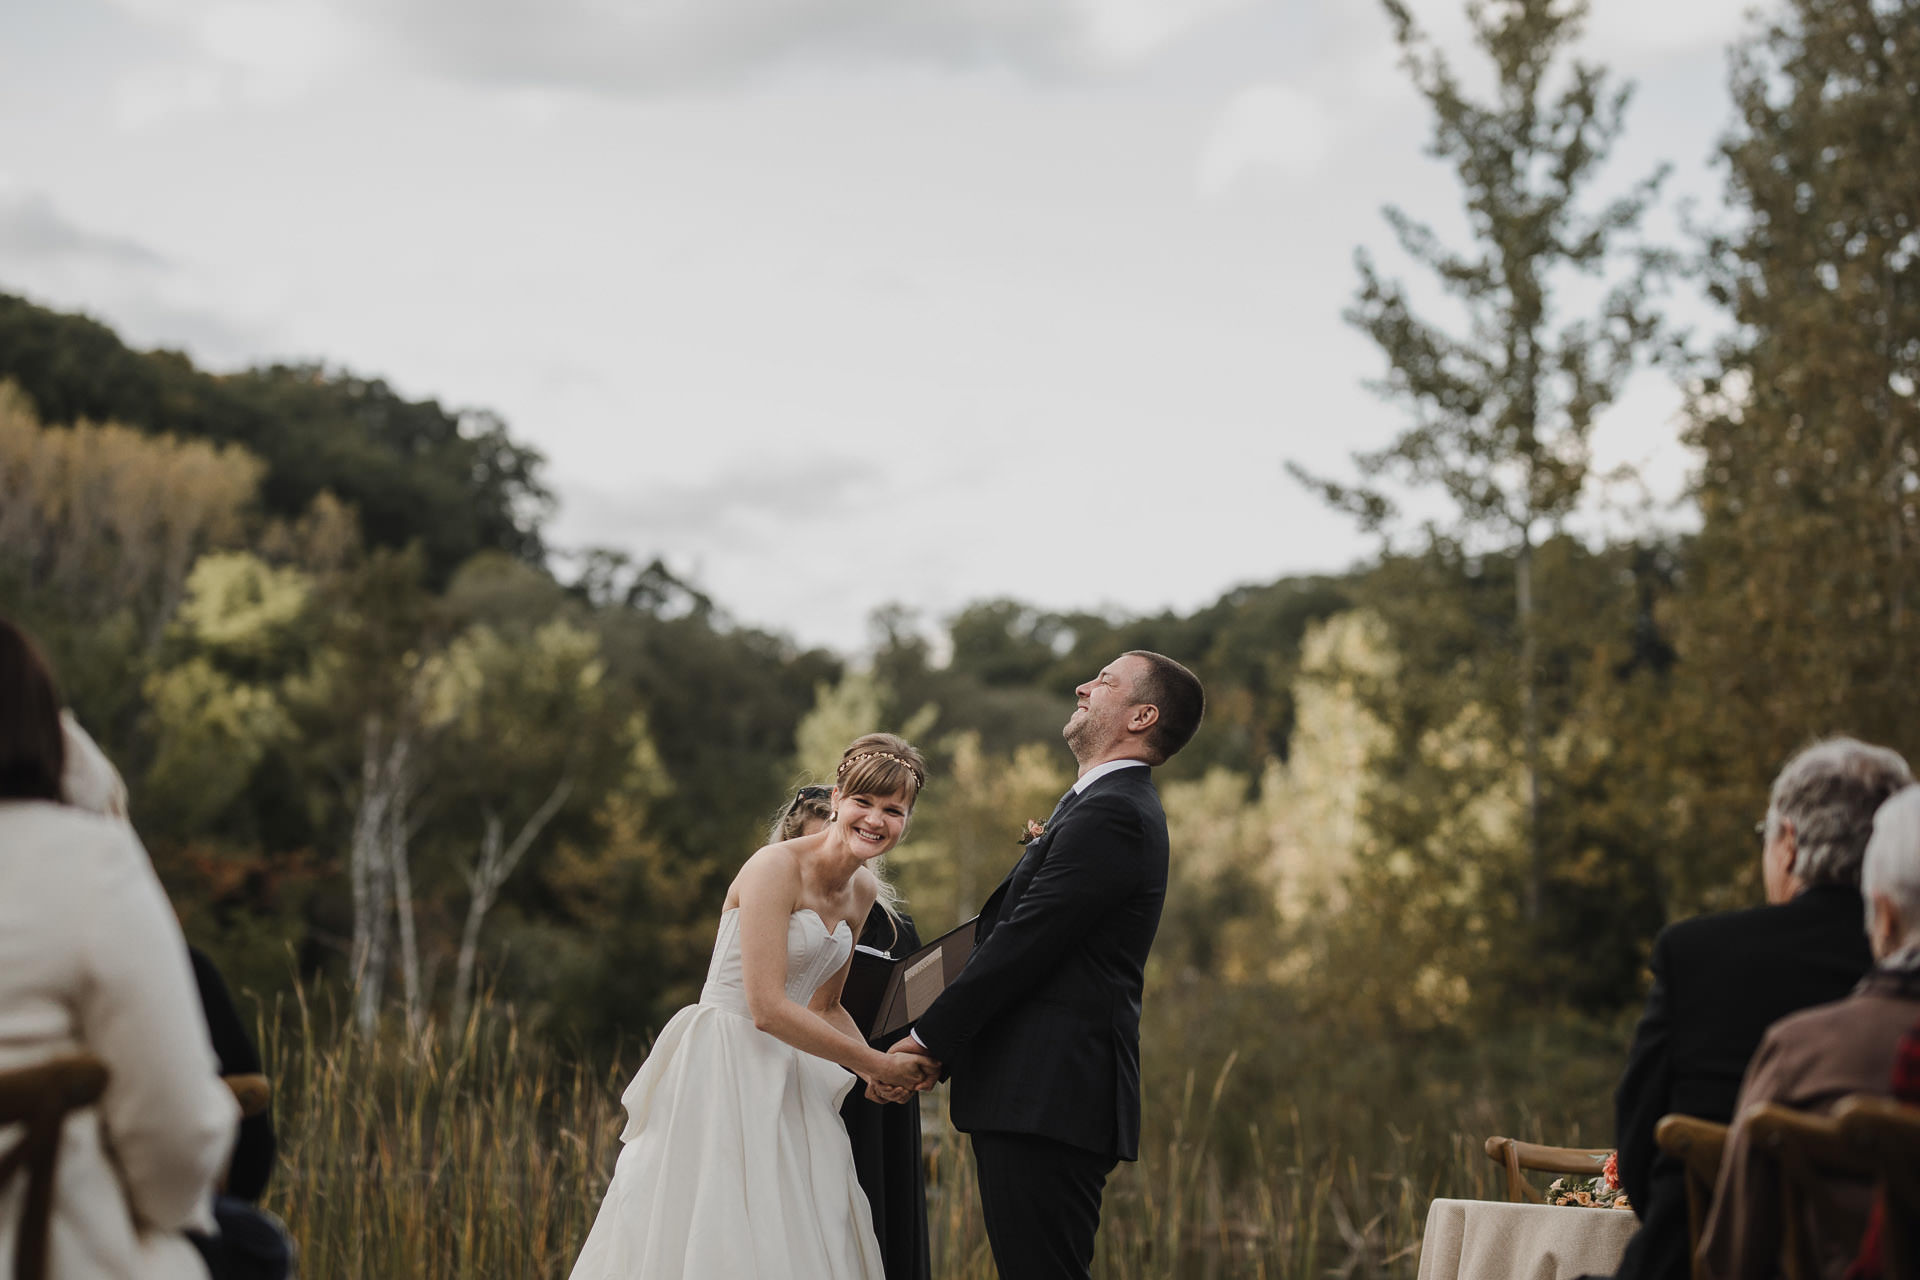 Evergreen Brickworks wedding photographer - bride and groom laughing